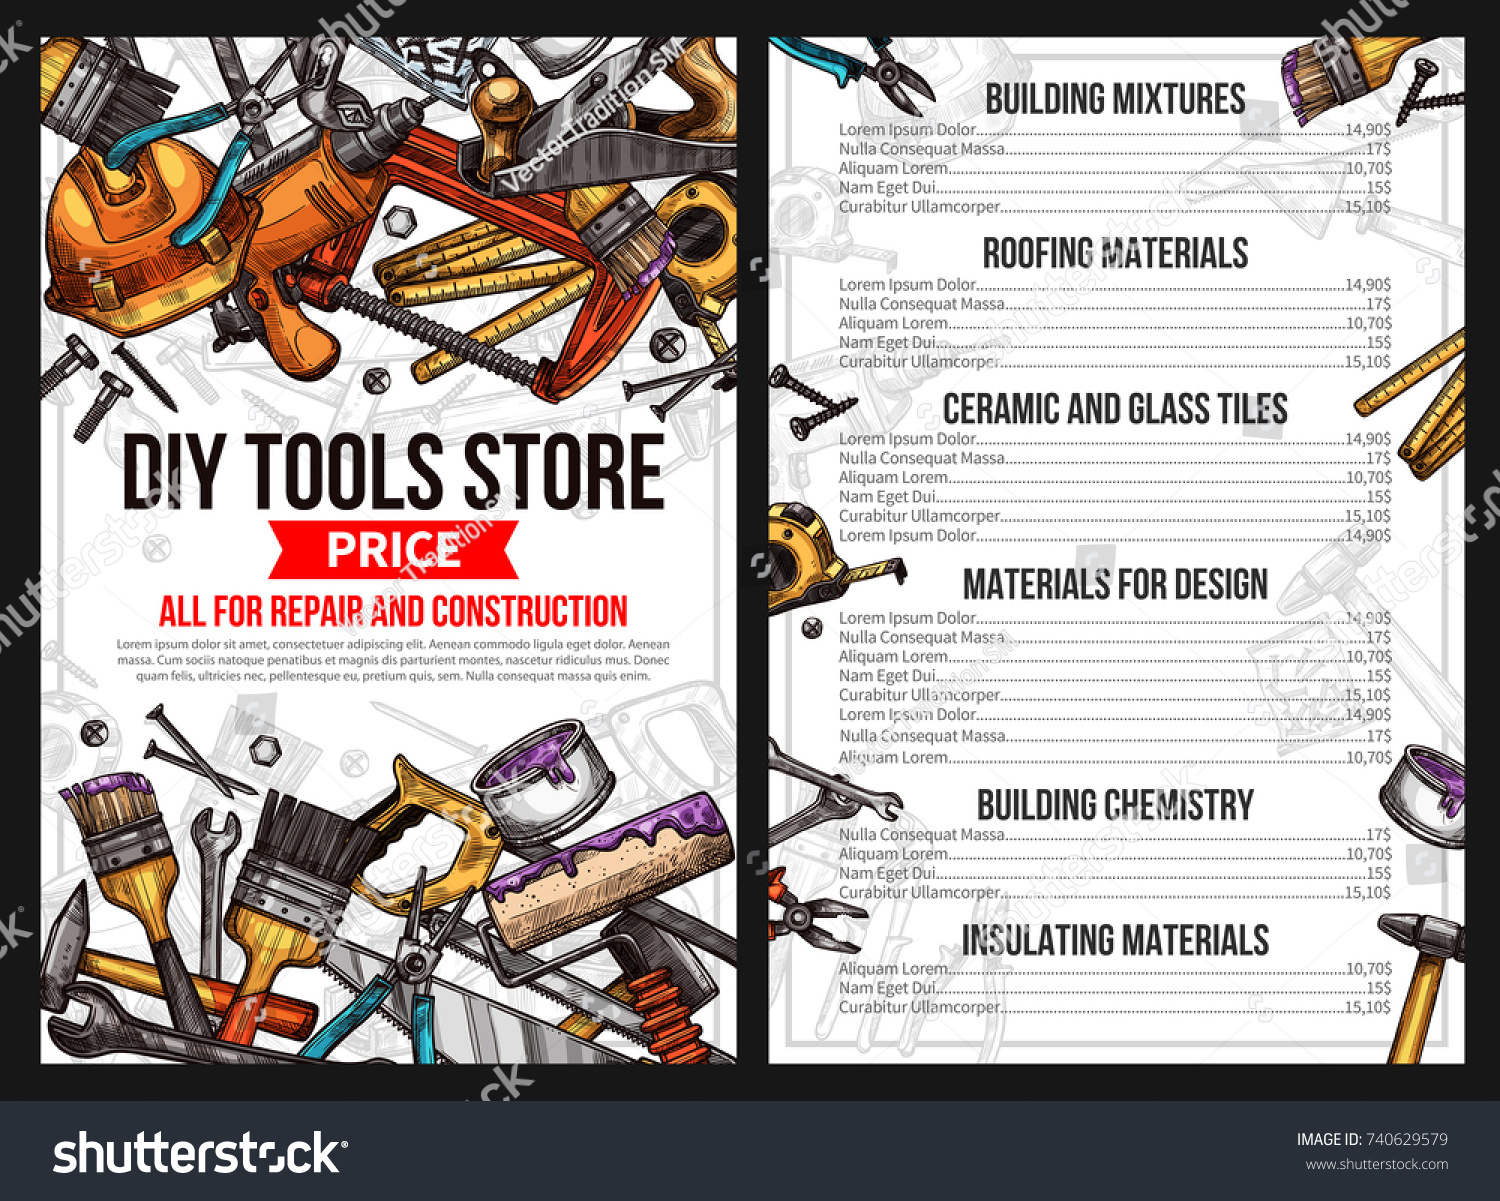 DIY Work Tools Store Price List For House Repair Or Handyman Construction  Service. Vector Sketch